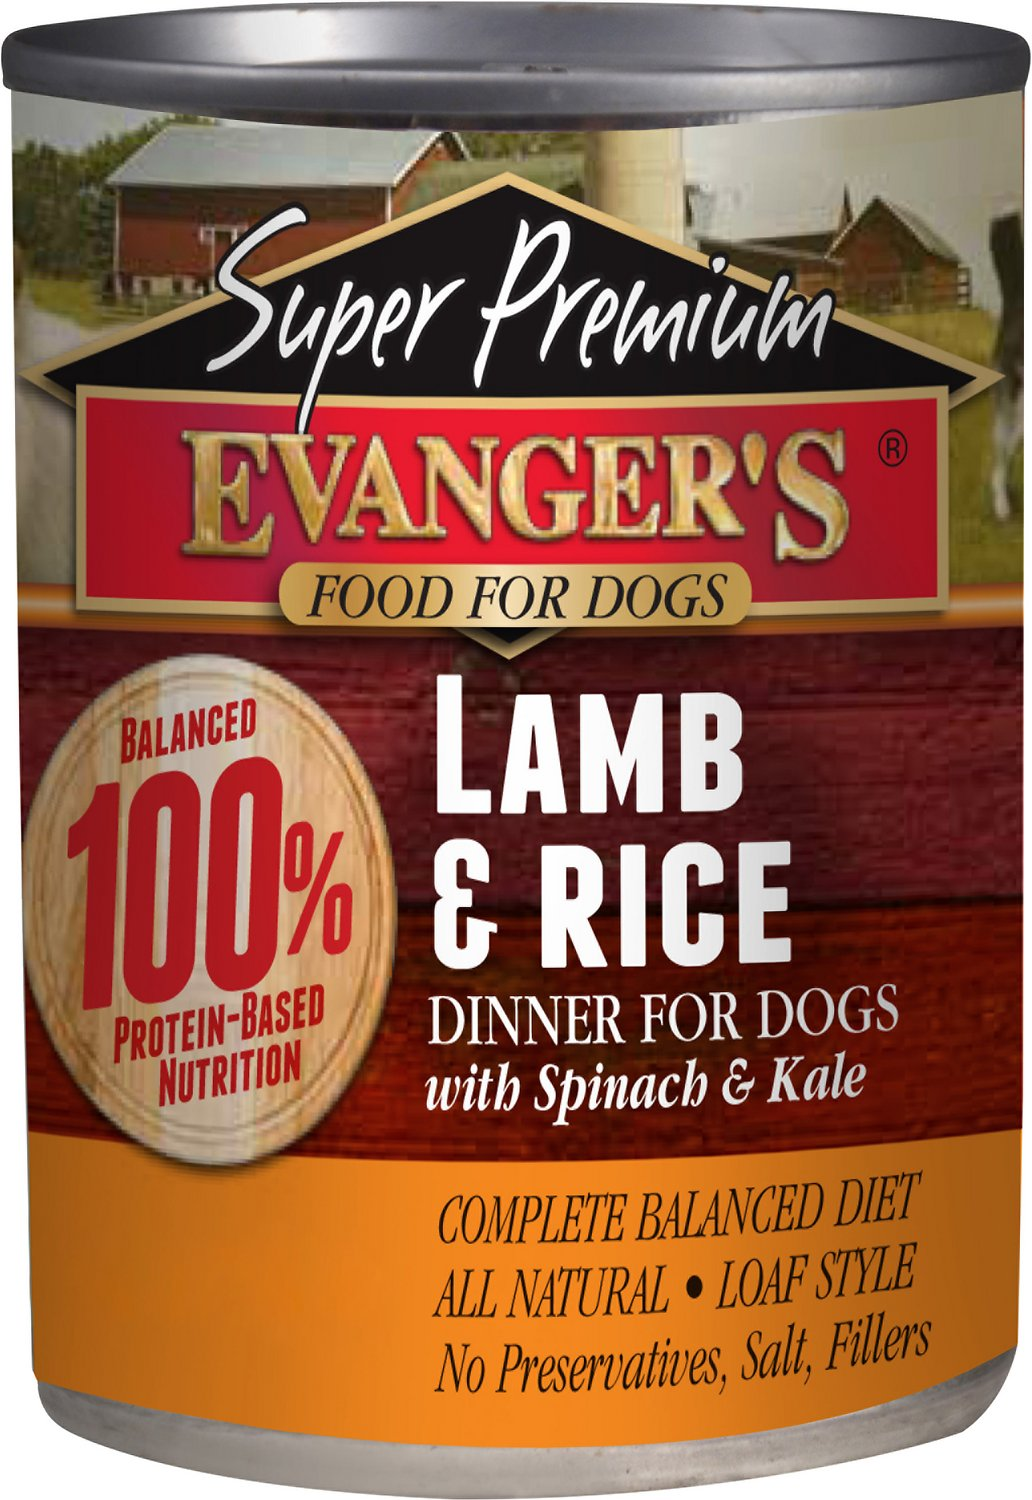 Evanger's Super Premium Lamb & Rice Dinner Canned Dog Food, 12.8-oz